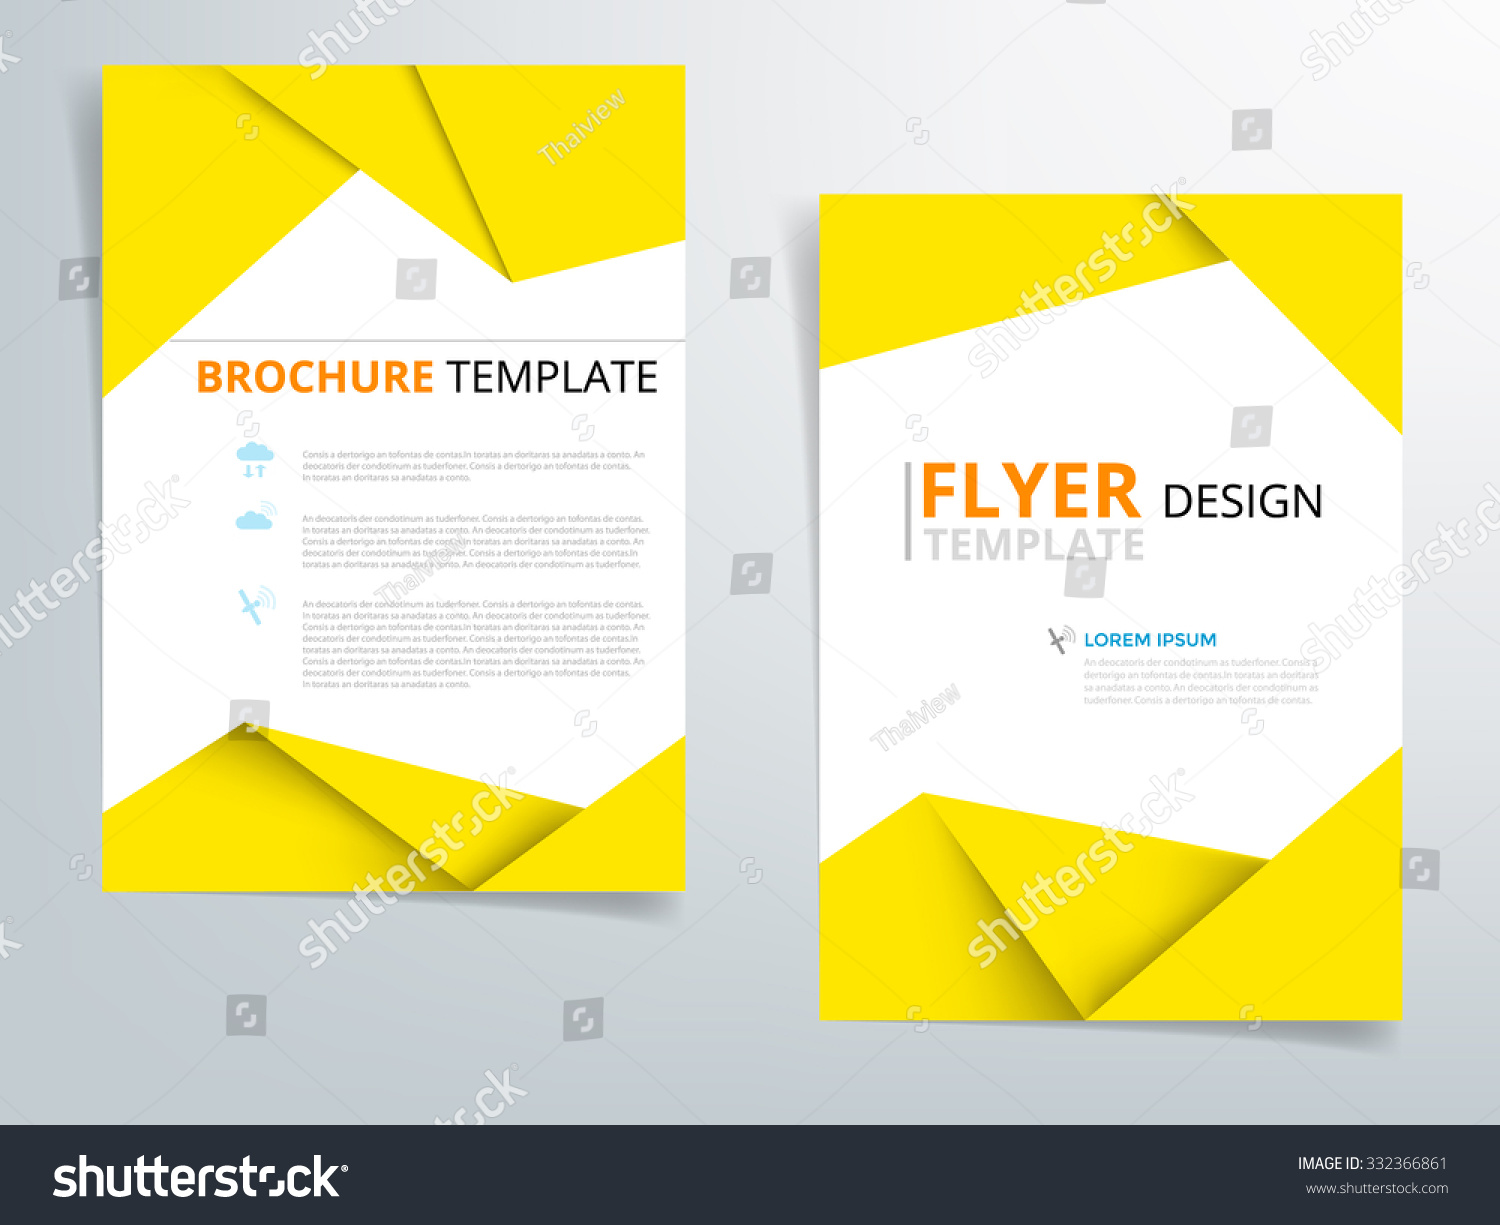 stock vector yellow brochure template flyer design vector origami paper layer overlap with sample text for a 332366861 Top Result 60 Inspirational Paper Ad Design Templates